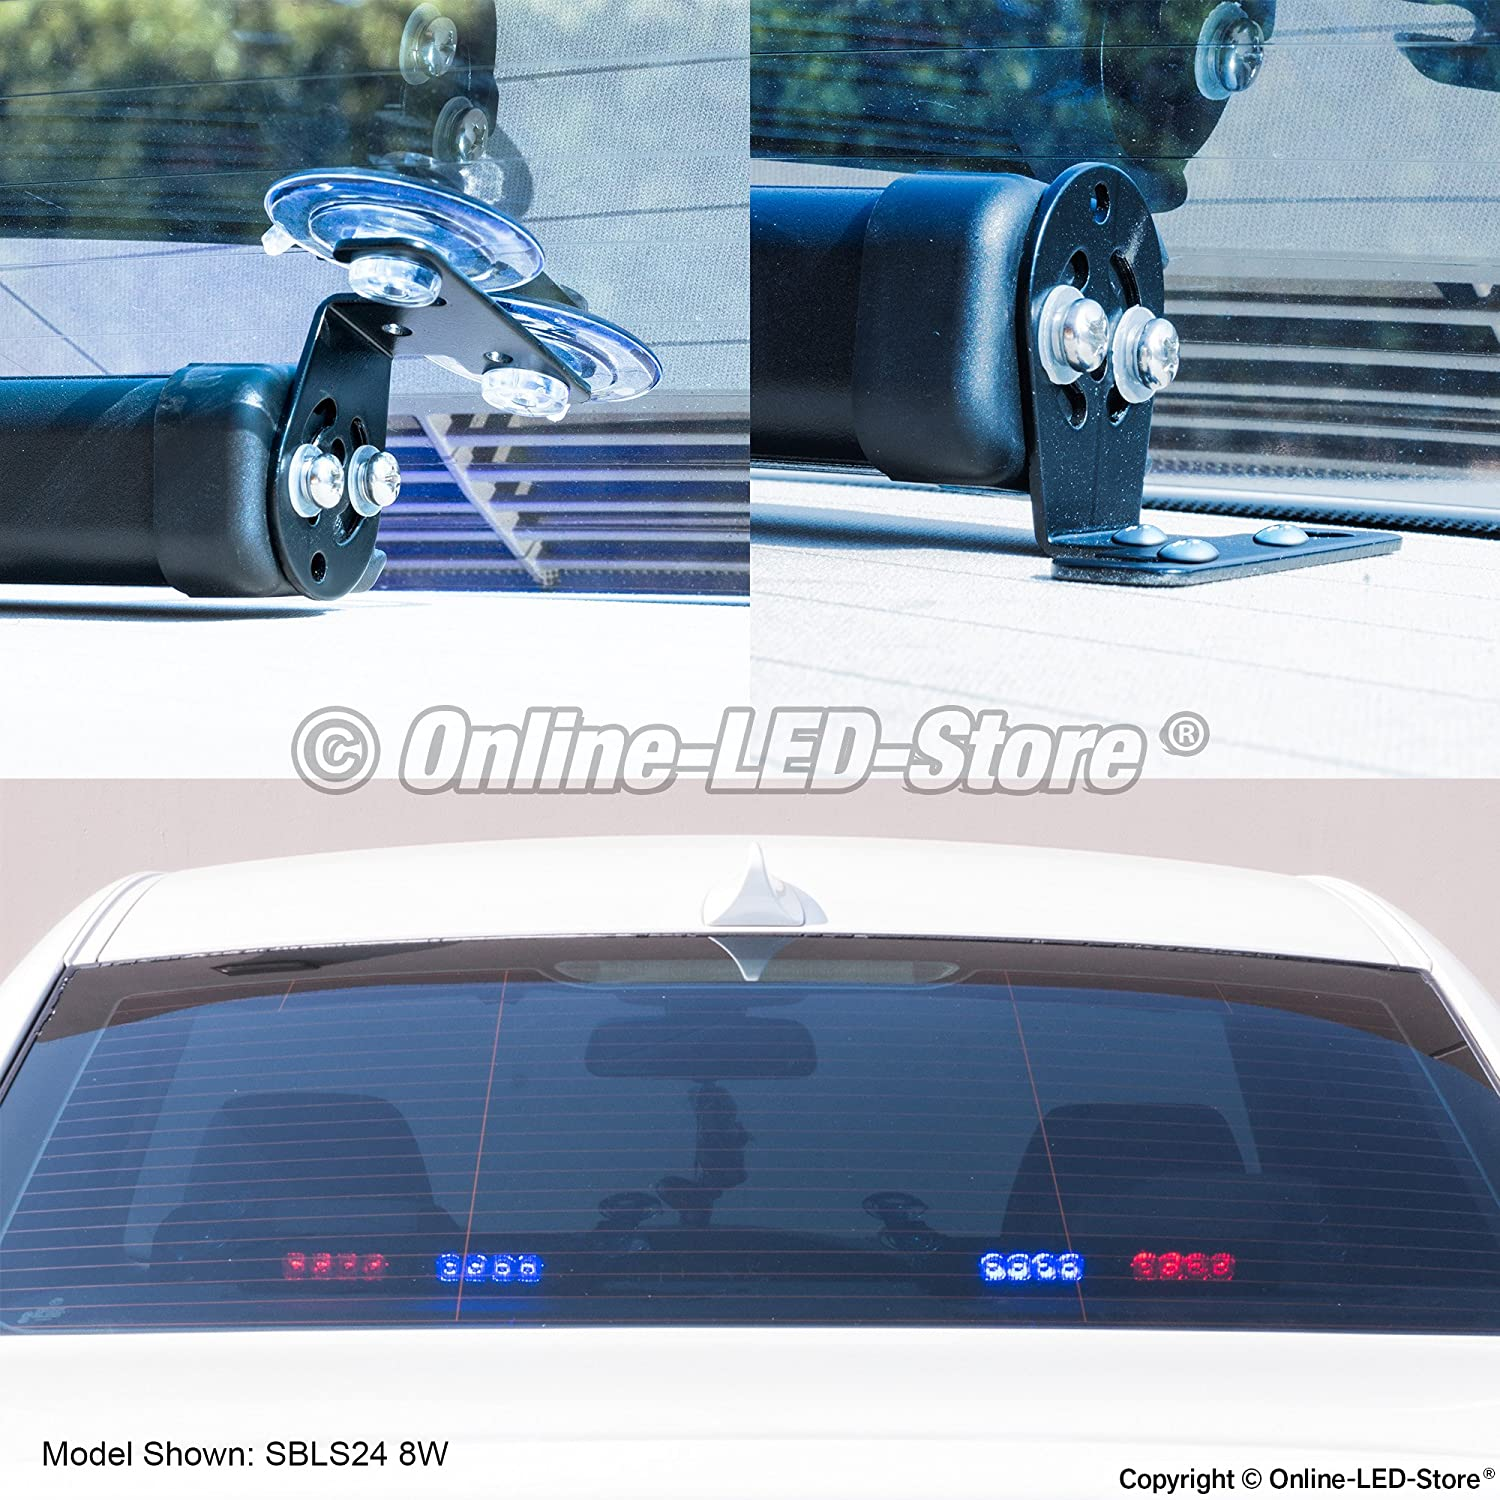 Lamphus Solarblast Sbls44 16w Led Strobe Warning Deck Whelen Tir3 Wiring Diagram Light Bar Blue Automotive